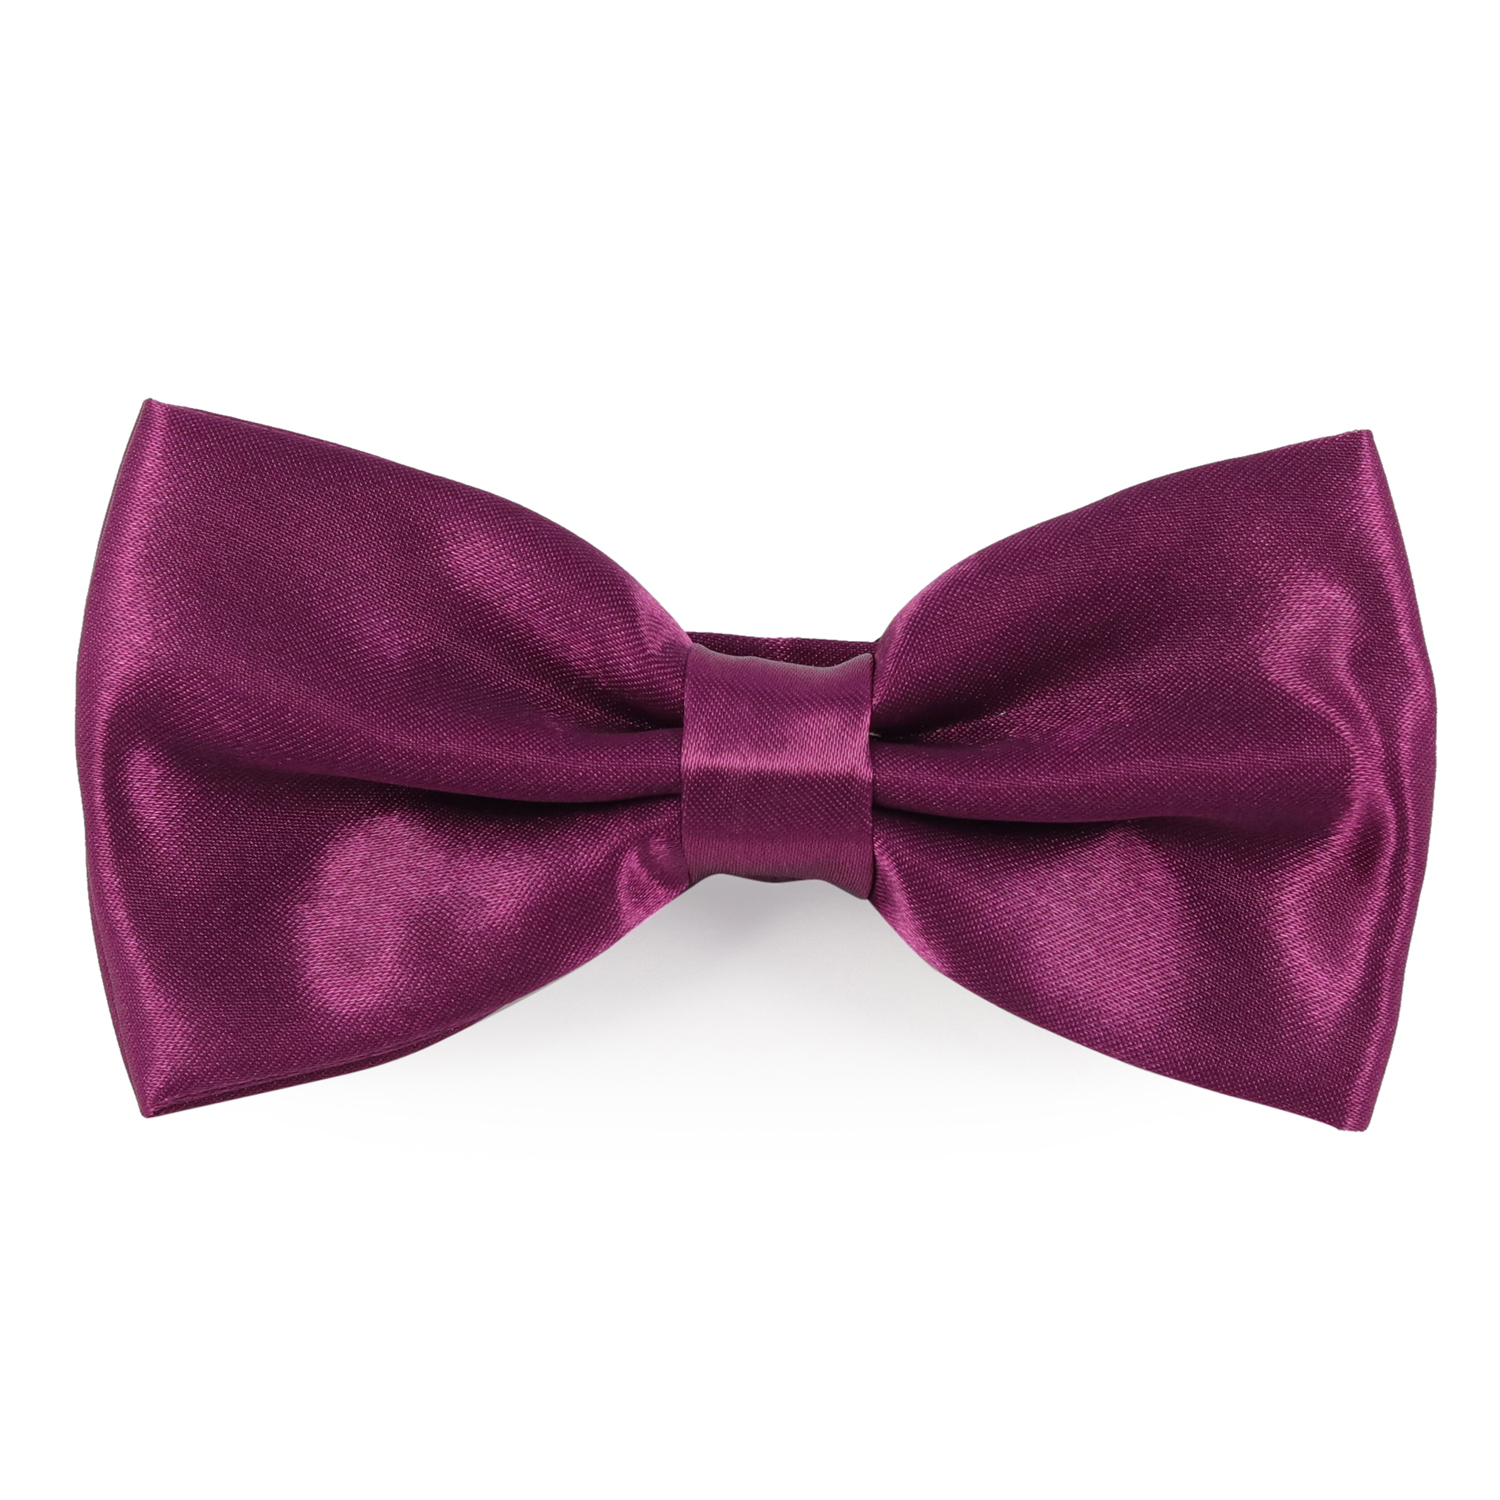 69th Avenue Men's Purple Polyester Free Size Pre Tied Bow Tie